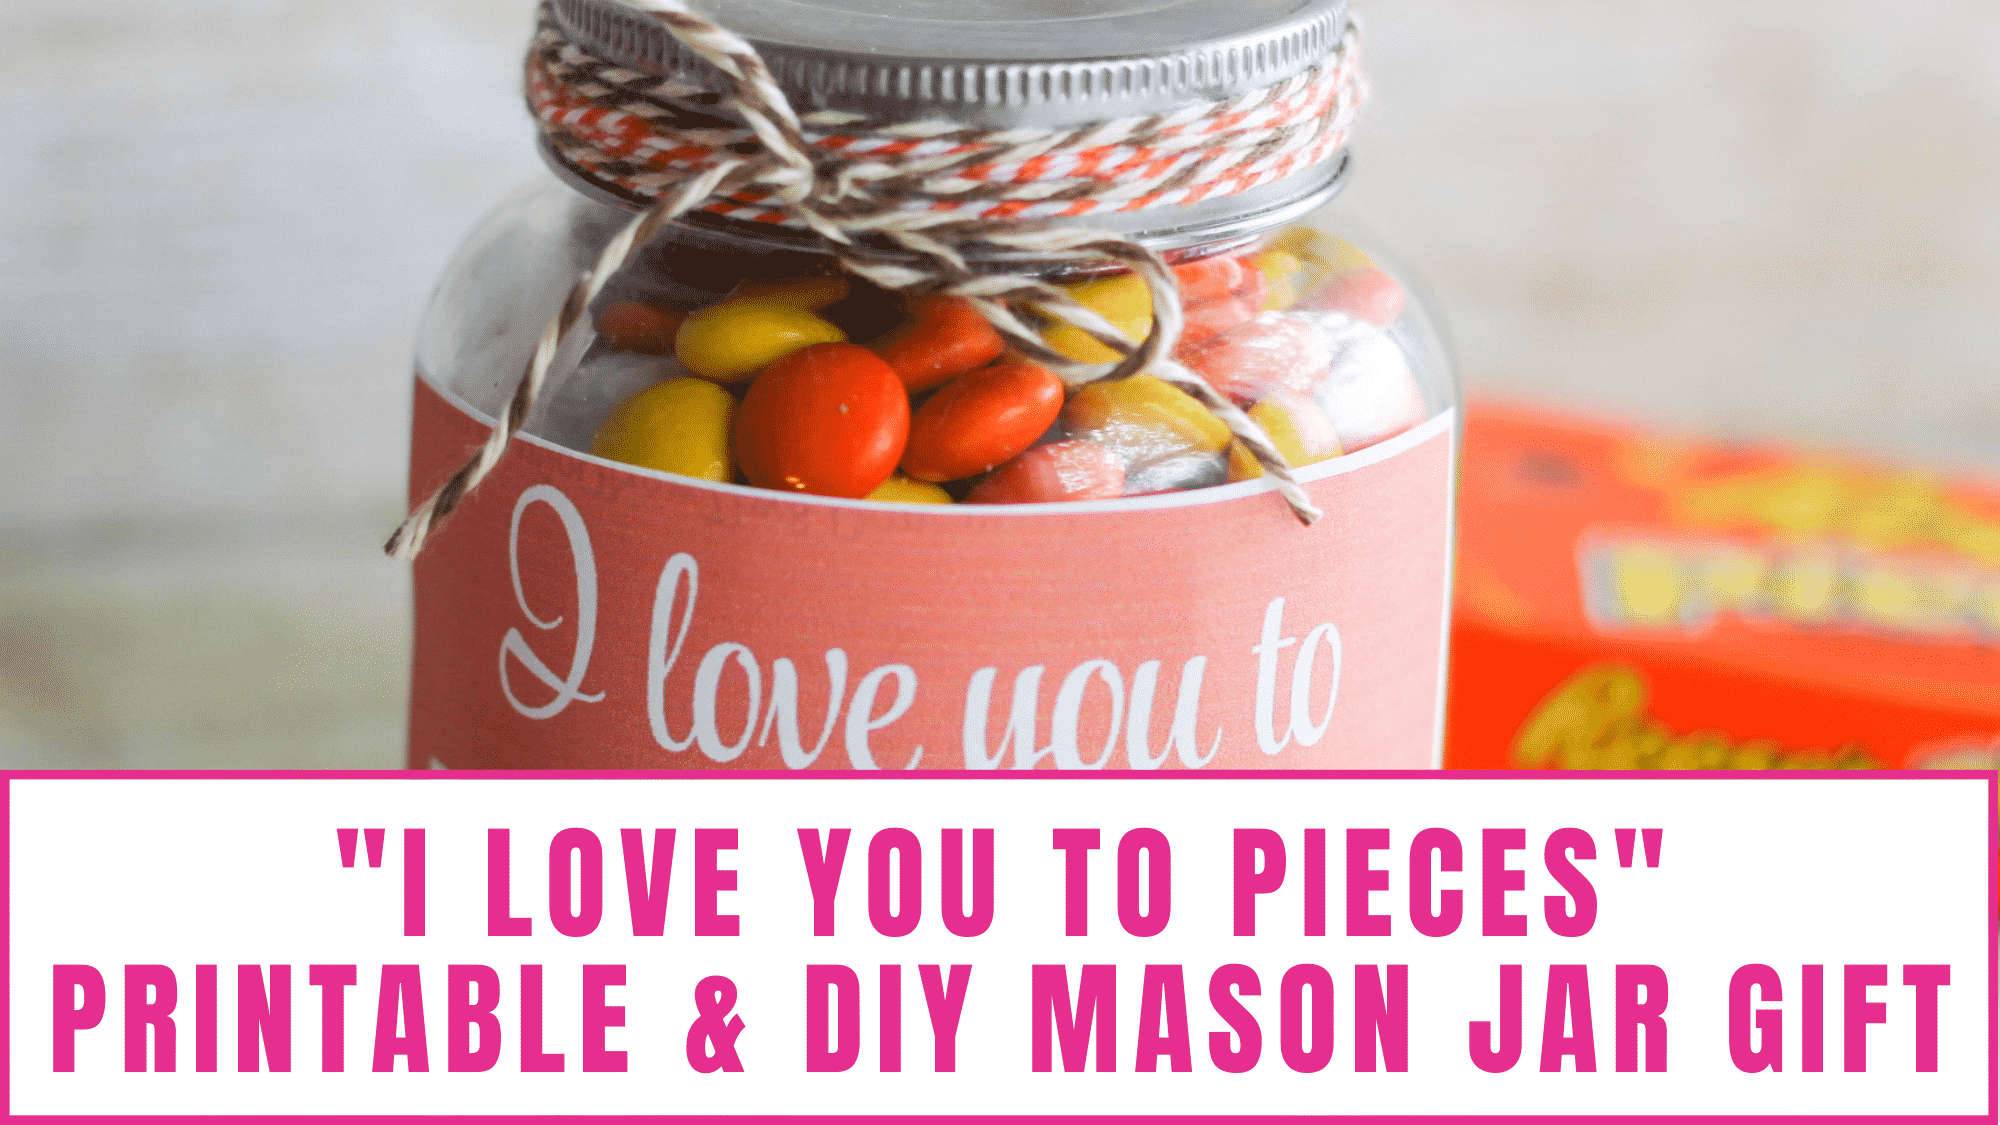 """Not sure what to get dad? If your dad has a sweet tooth I bet he'd love this """"I love you to pieces"""" printable DIY Mason jar gift of Reese's pieces."""